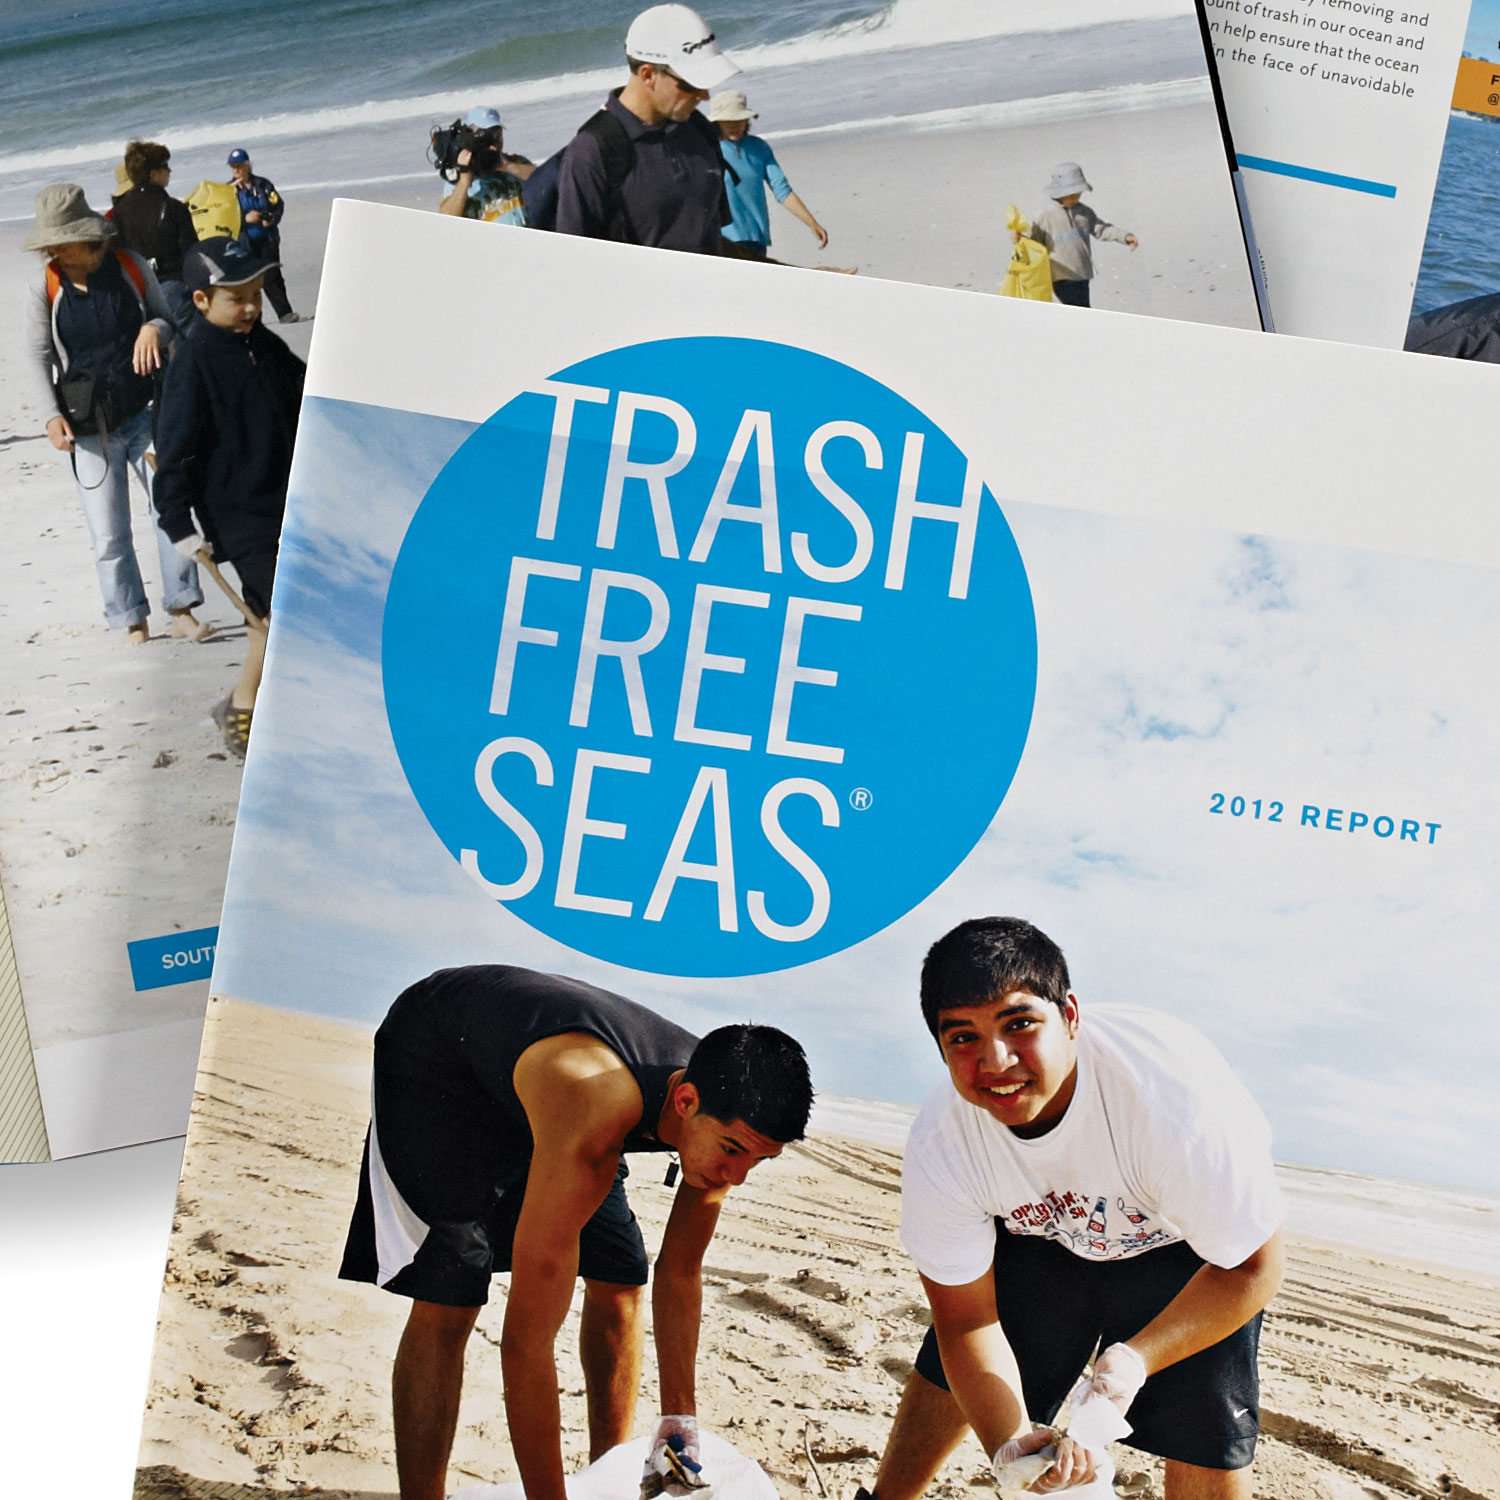 Trash Free Seas® – Annal Report